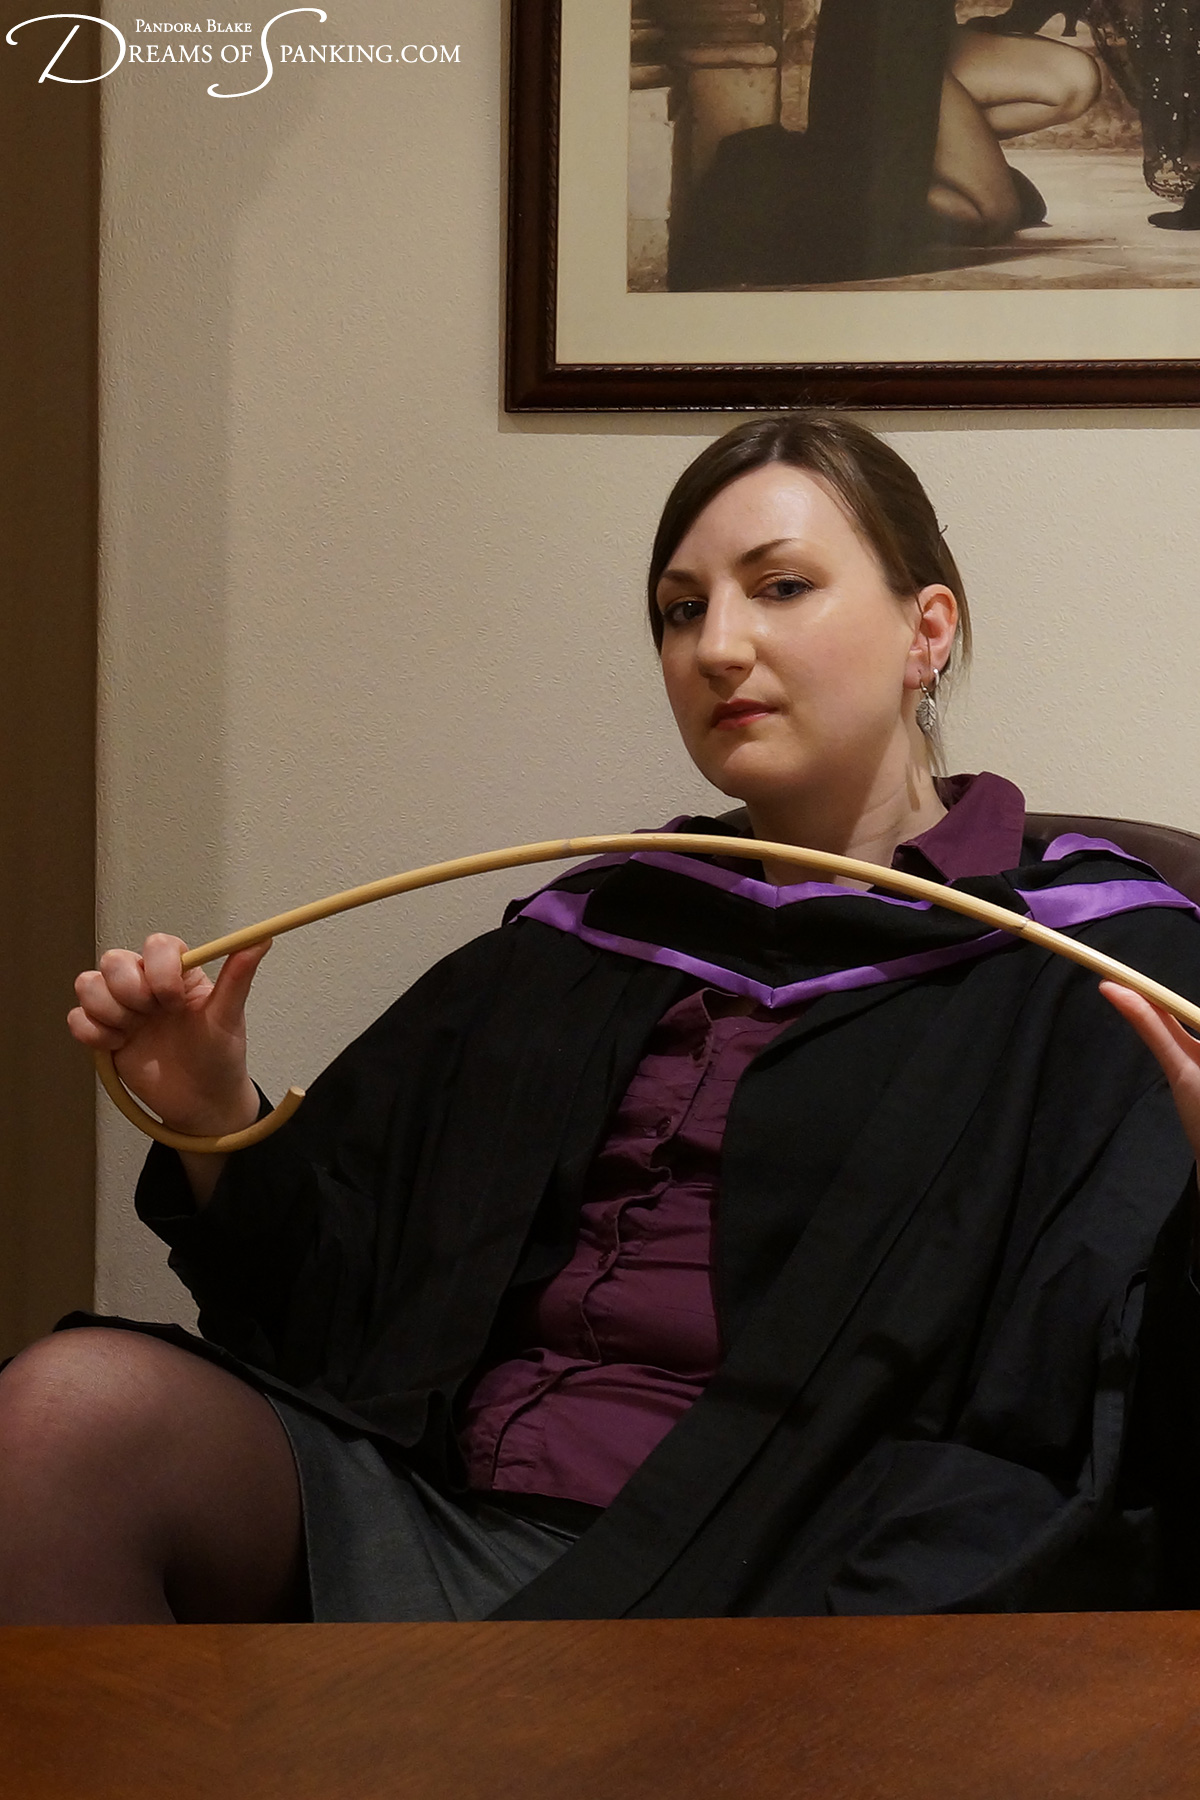 In the headmistress' study with Pandora Blake at Dreams of Spanking